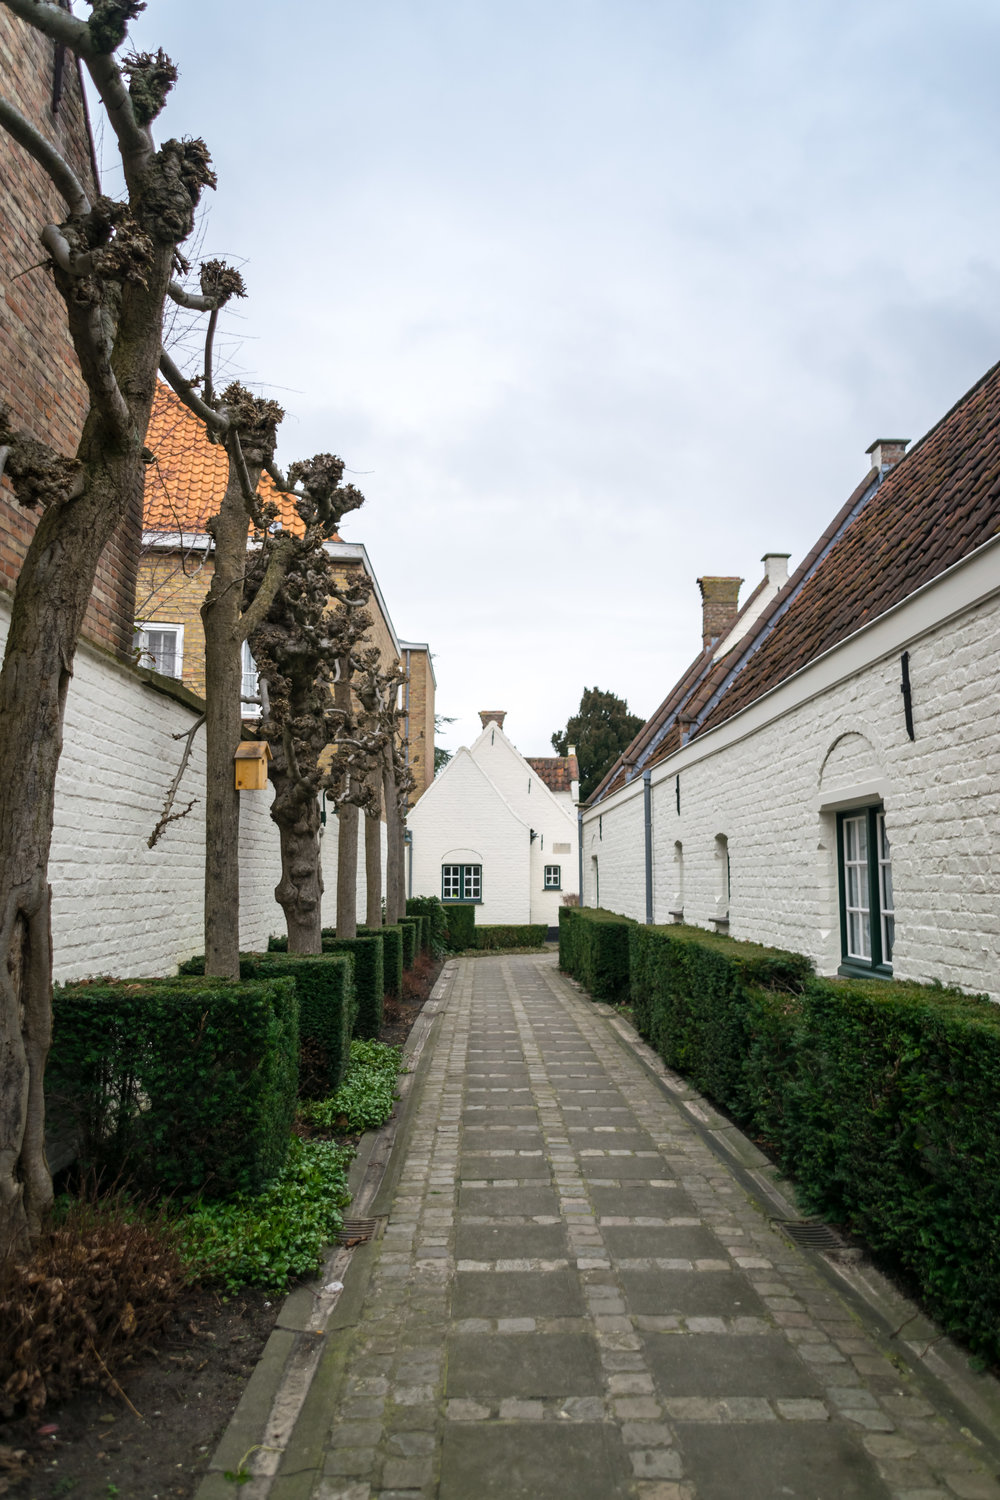 these almshouses (godshuizen) were built for the aged and widowed